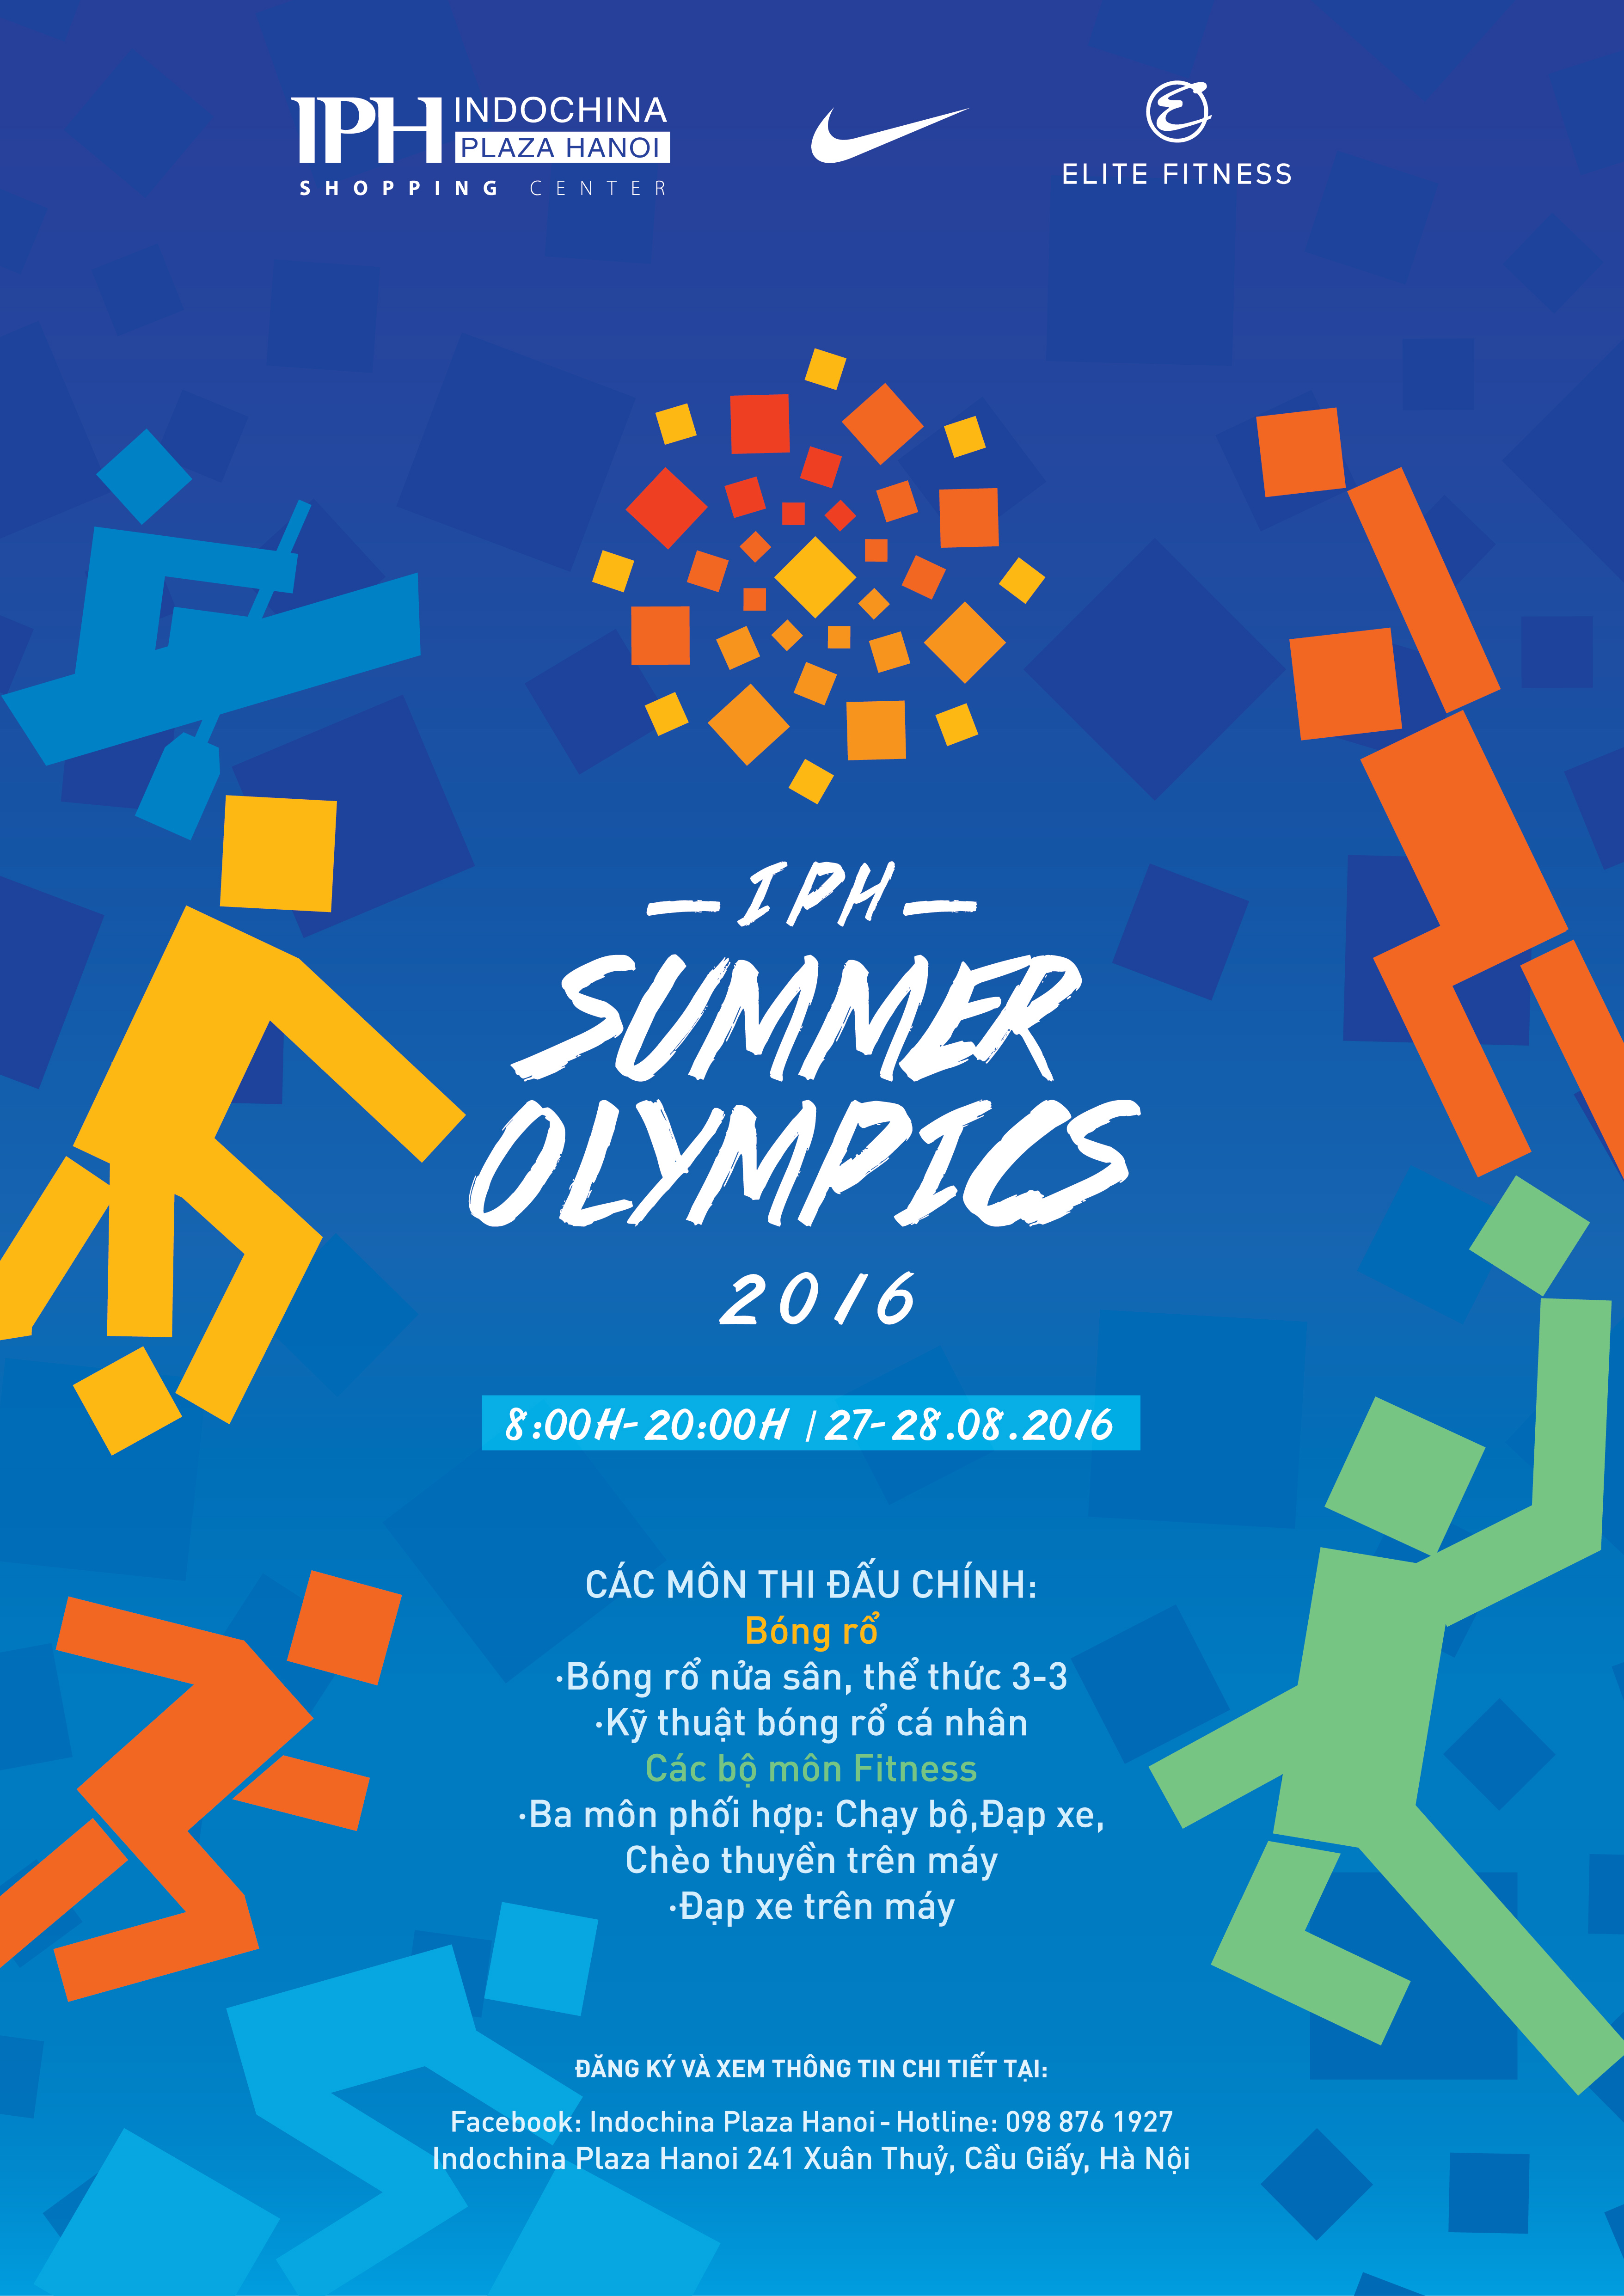 out-poster-iph-summer-olympic-3-01